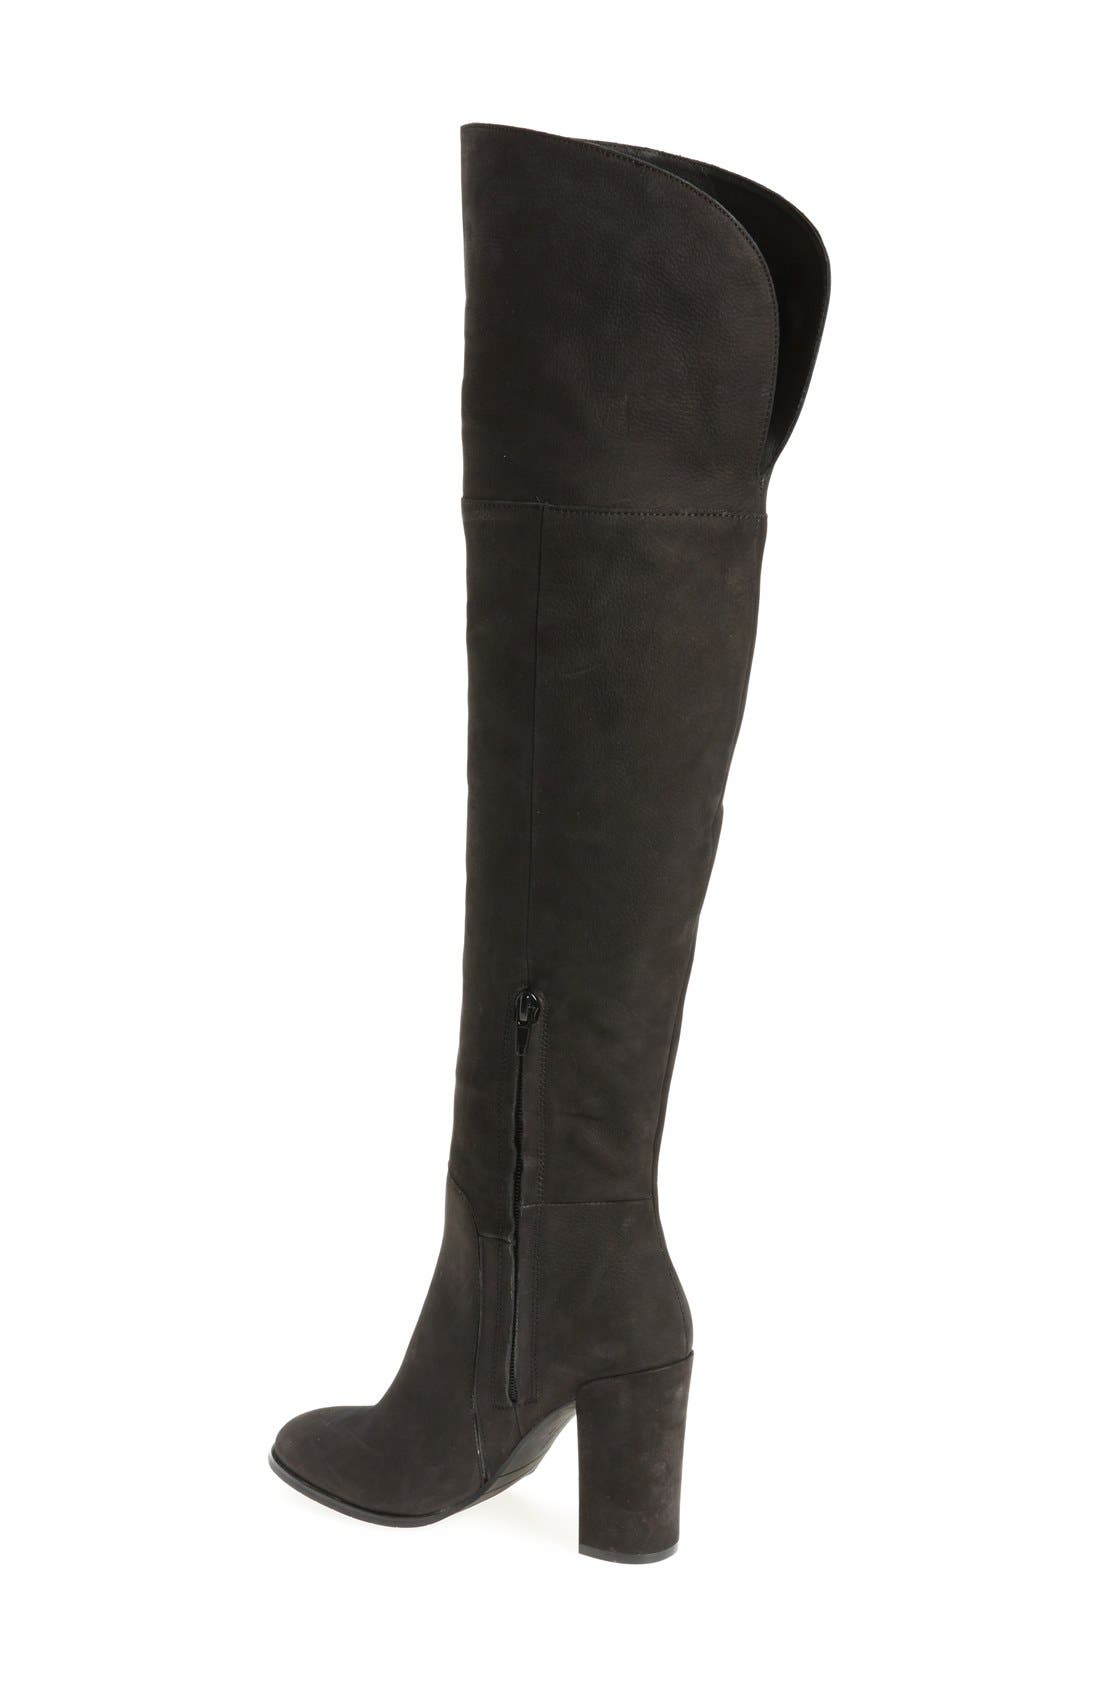 Over the Knee Jack Boot,                             Alternate thumbnail 2, color,                             Black Nubuck Leather